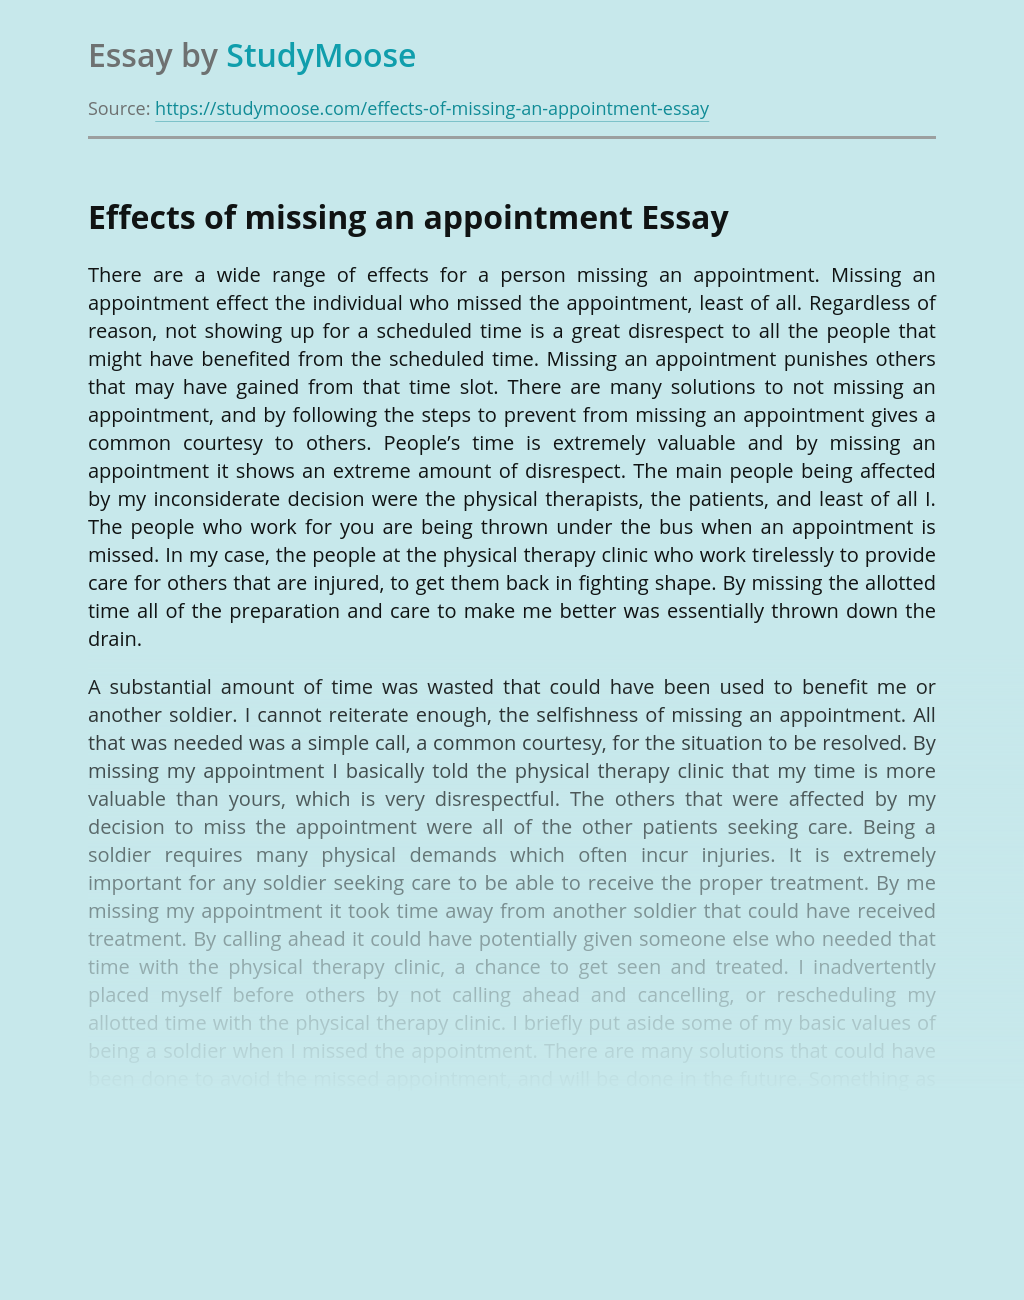 Reasons for and Consequences of Missed Appointments